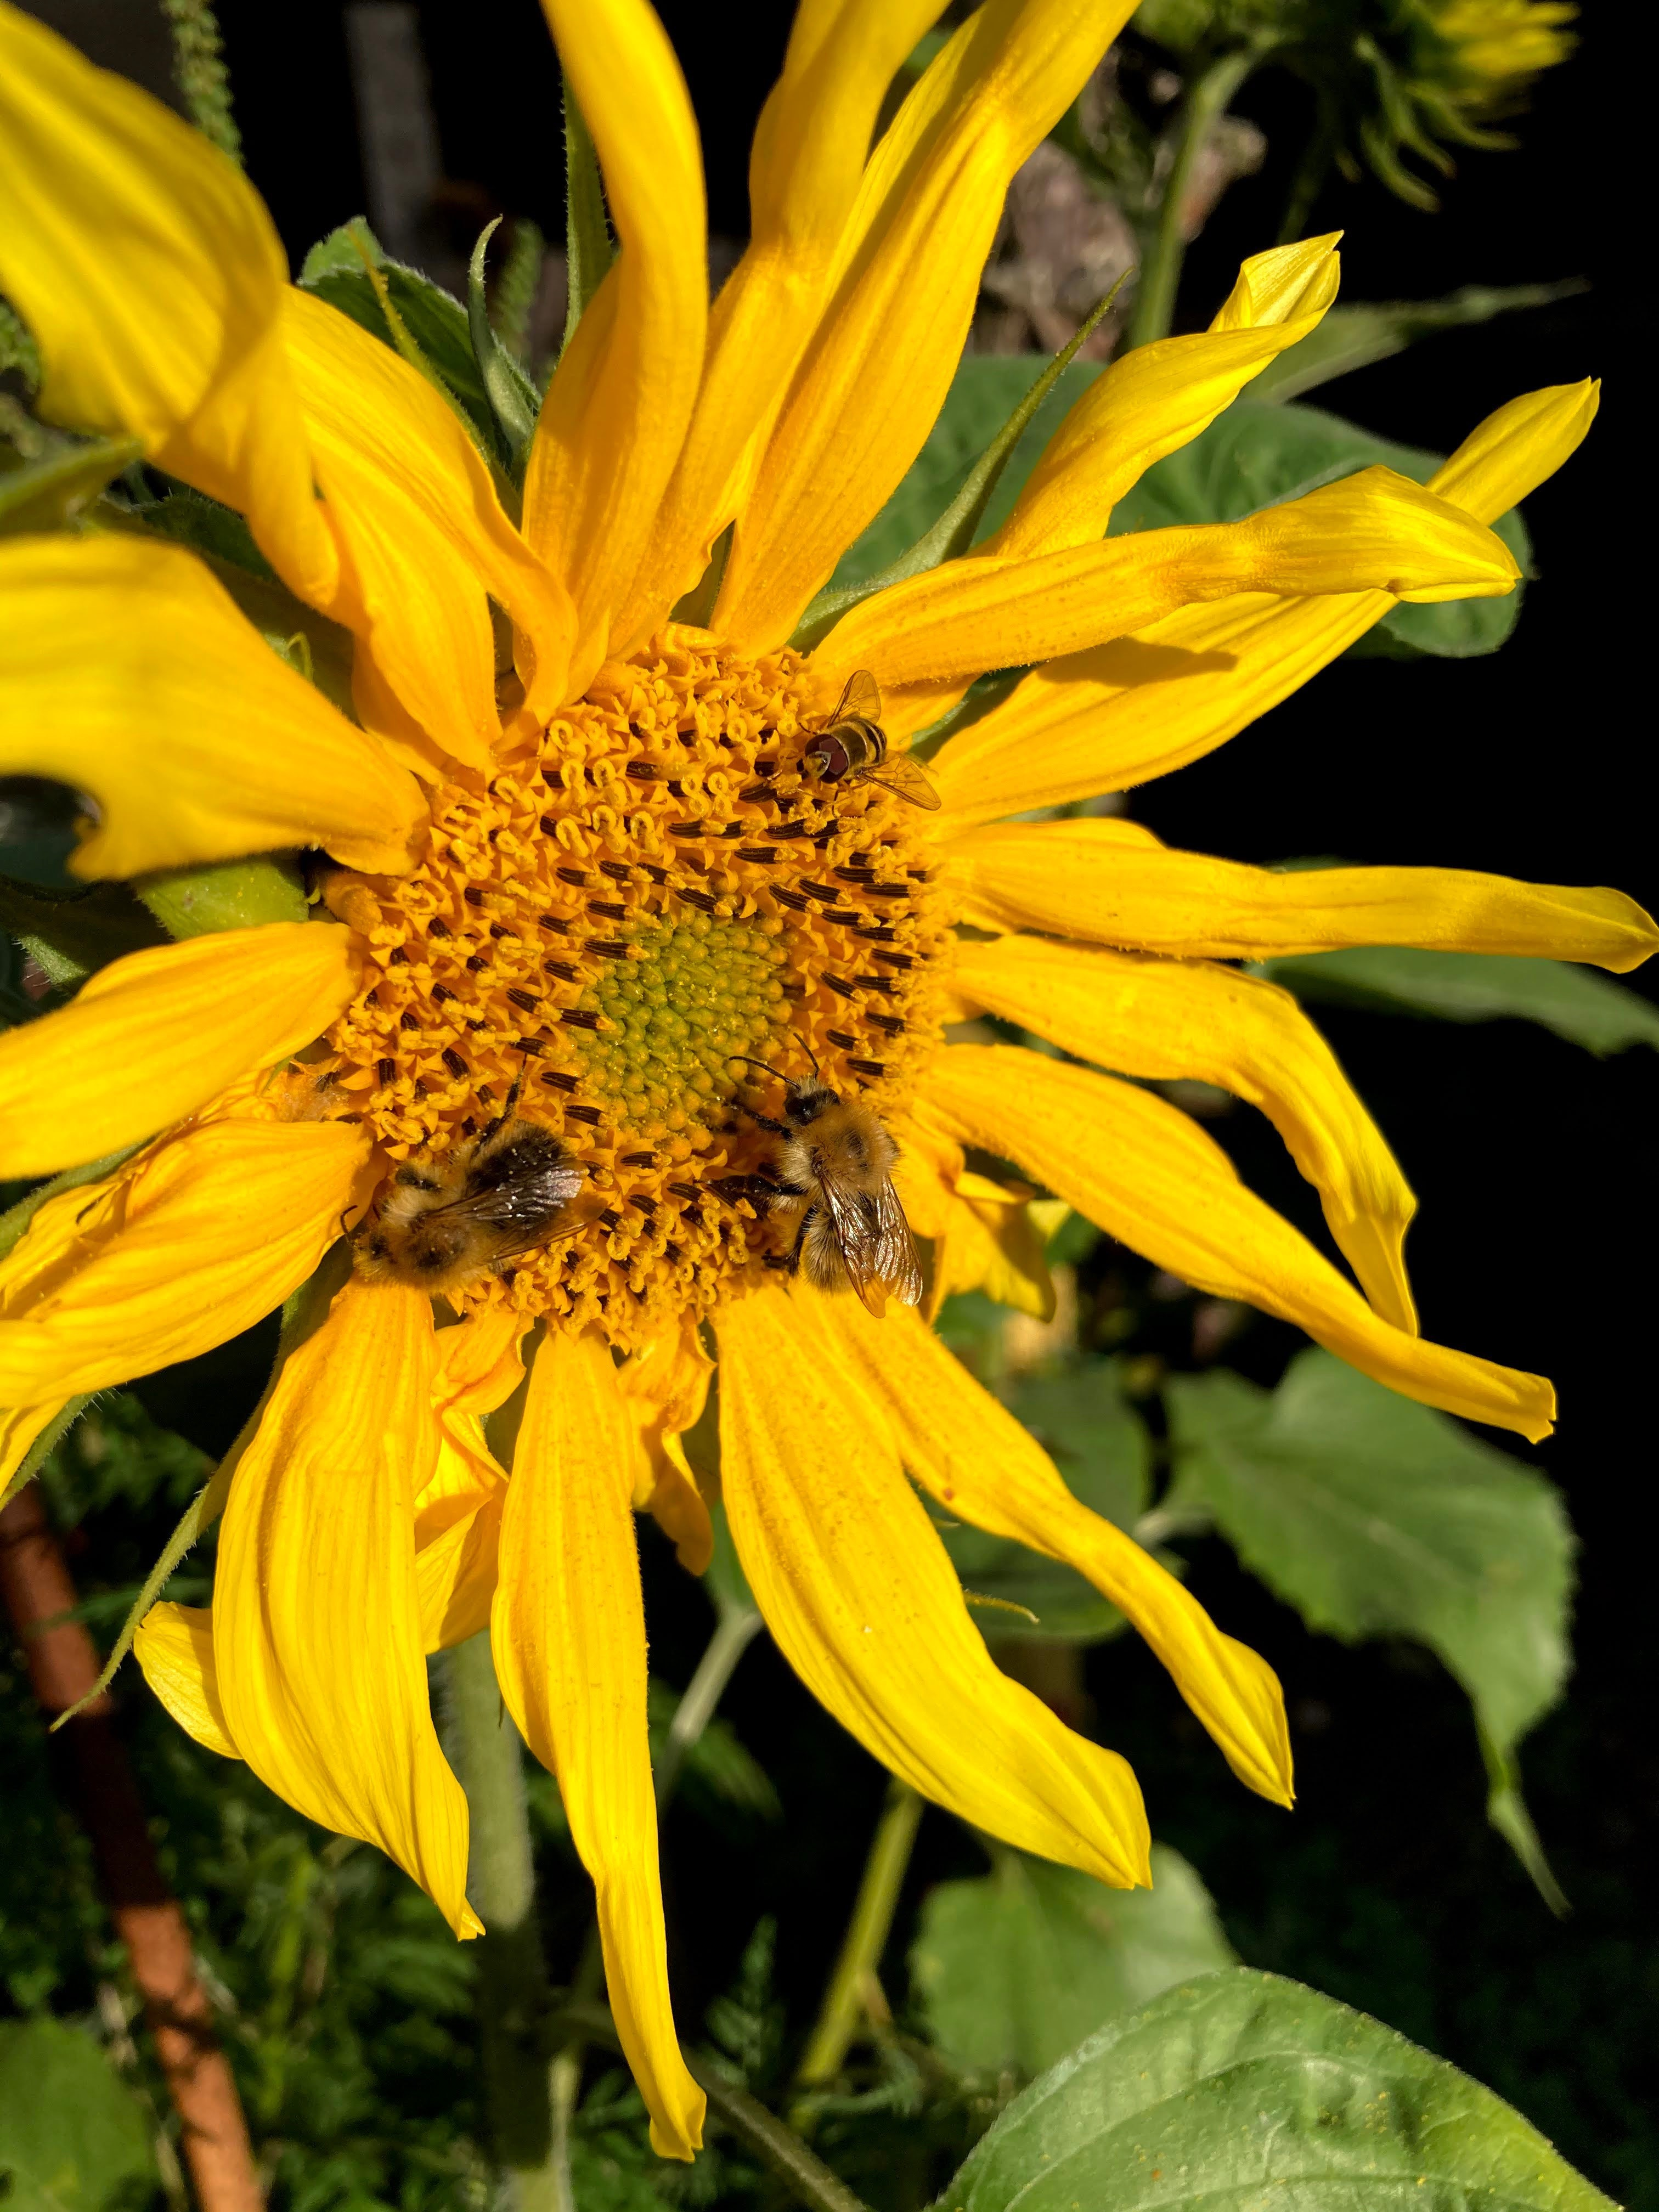 Sophies-hover-flies-and-sunflowers